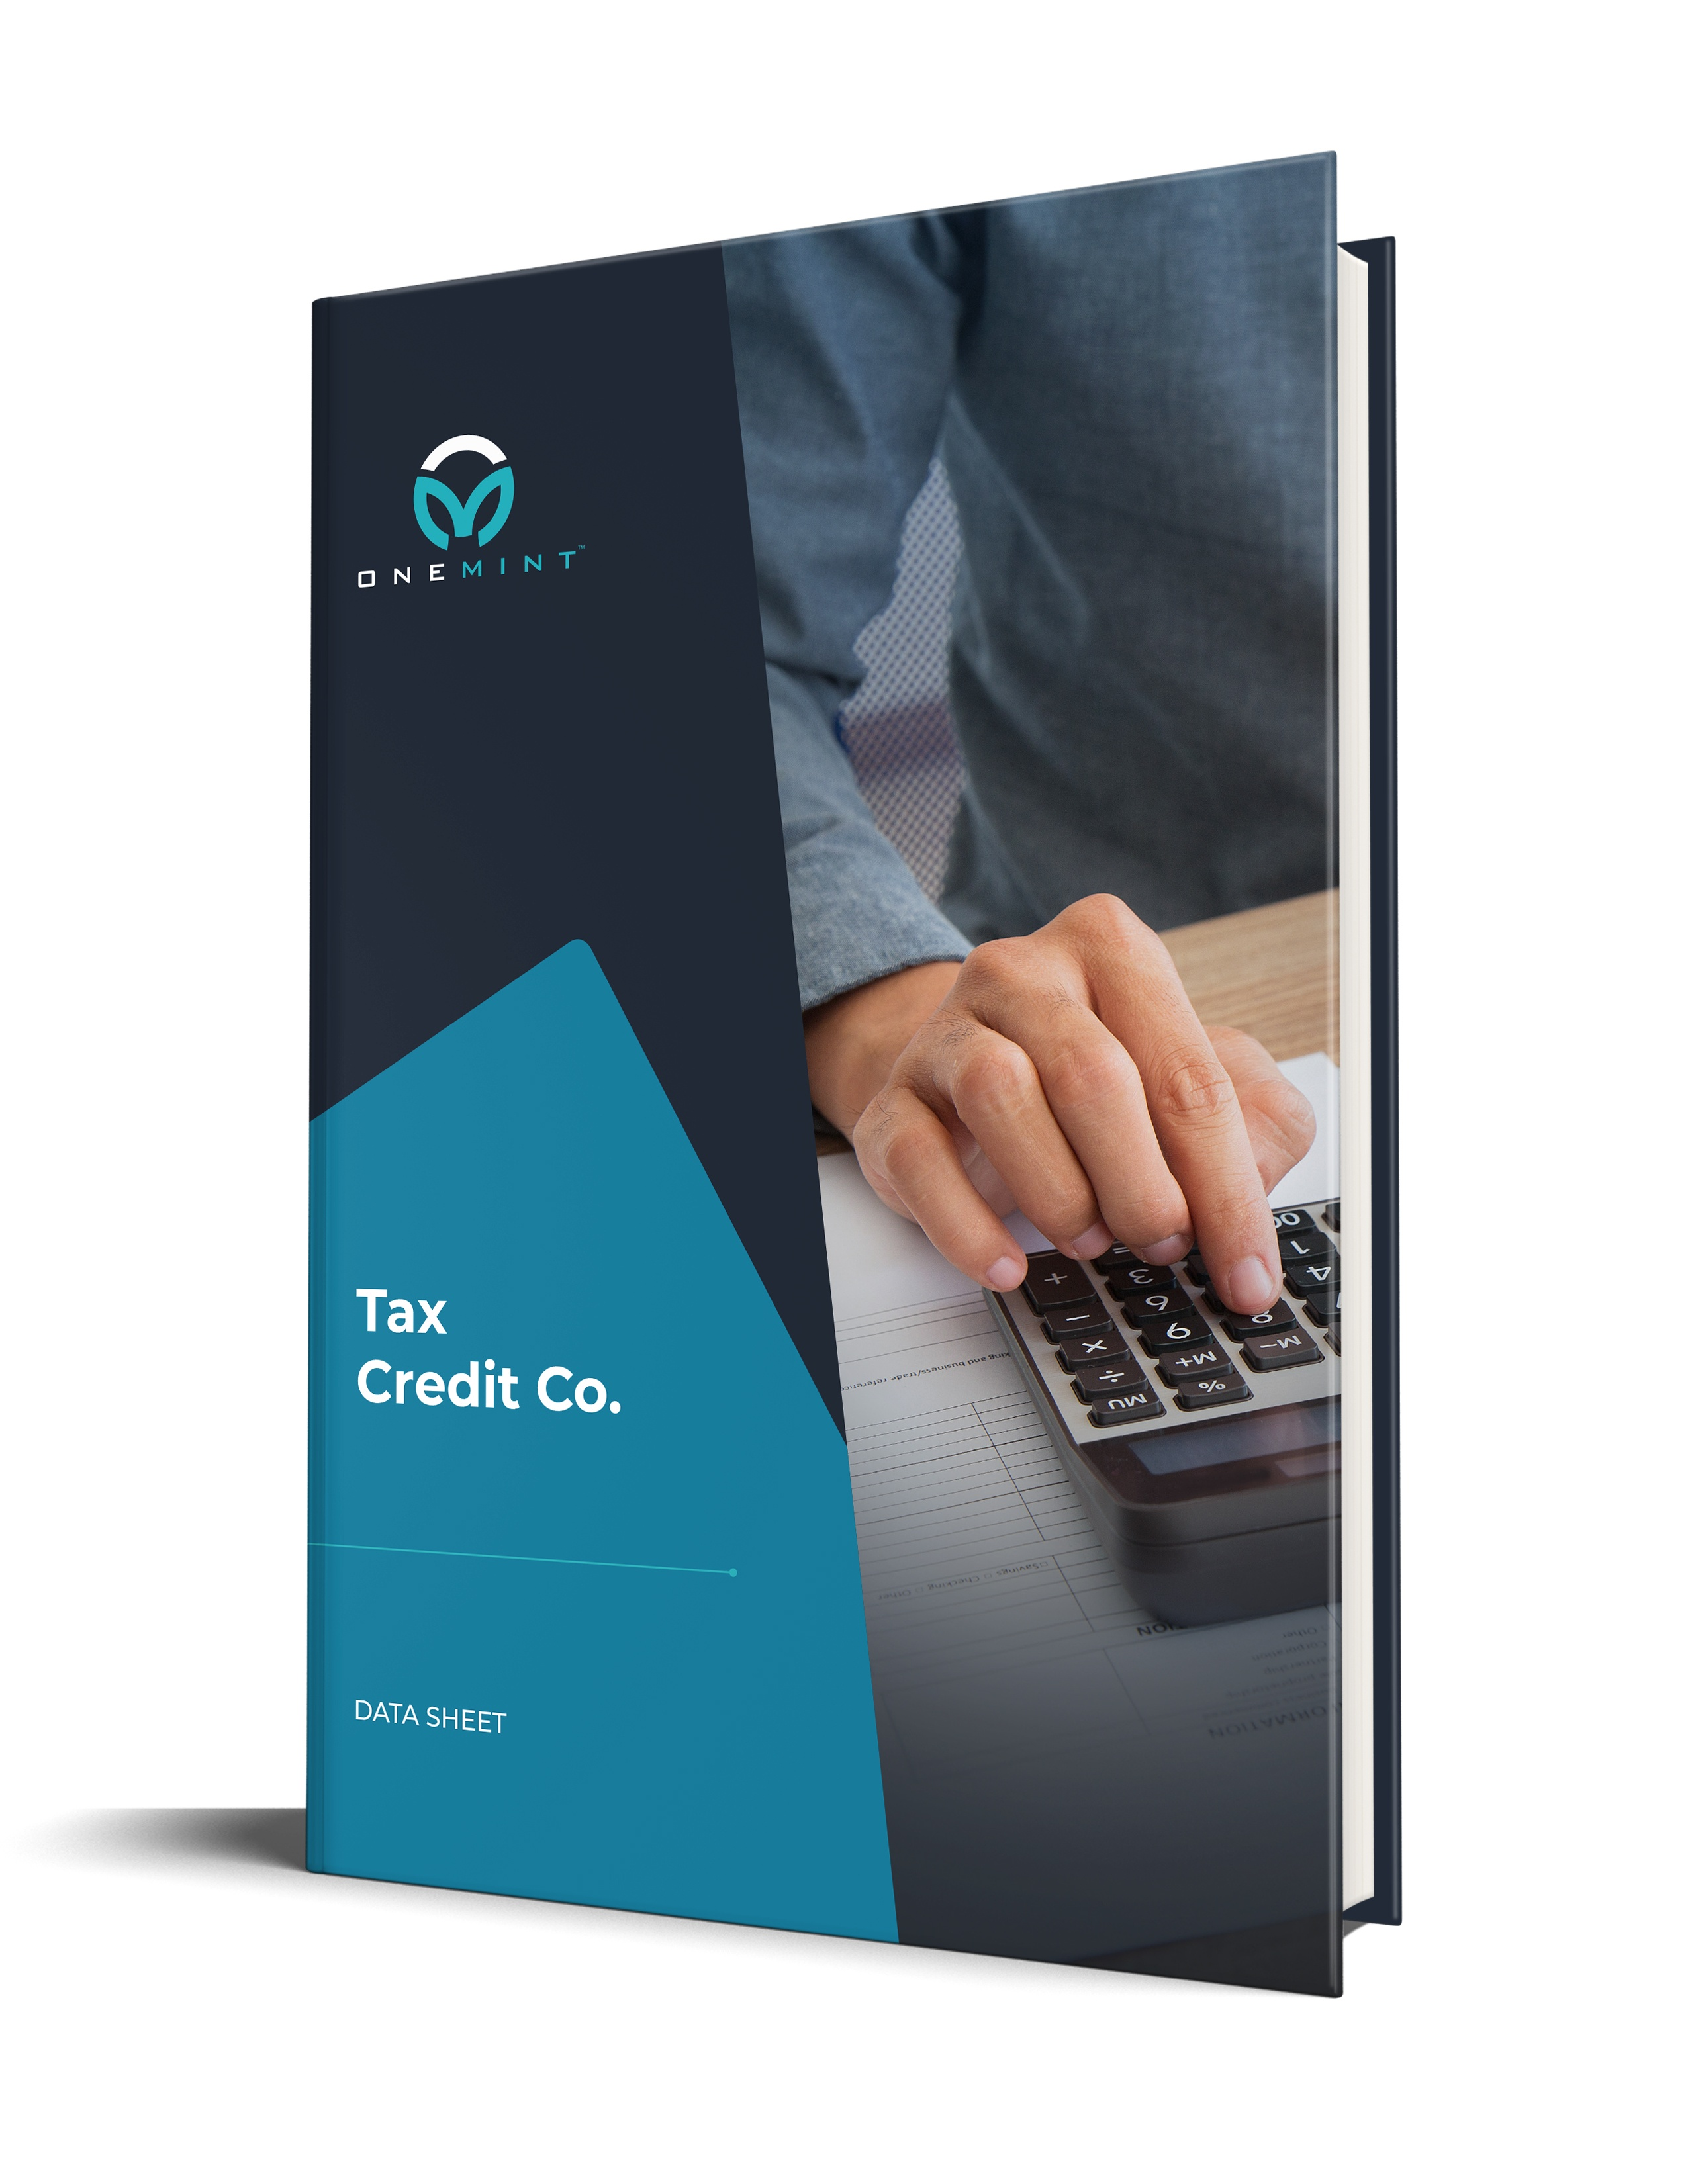 ONEMINT Tax Credit Co. Integration